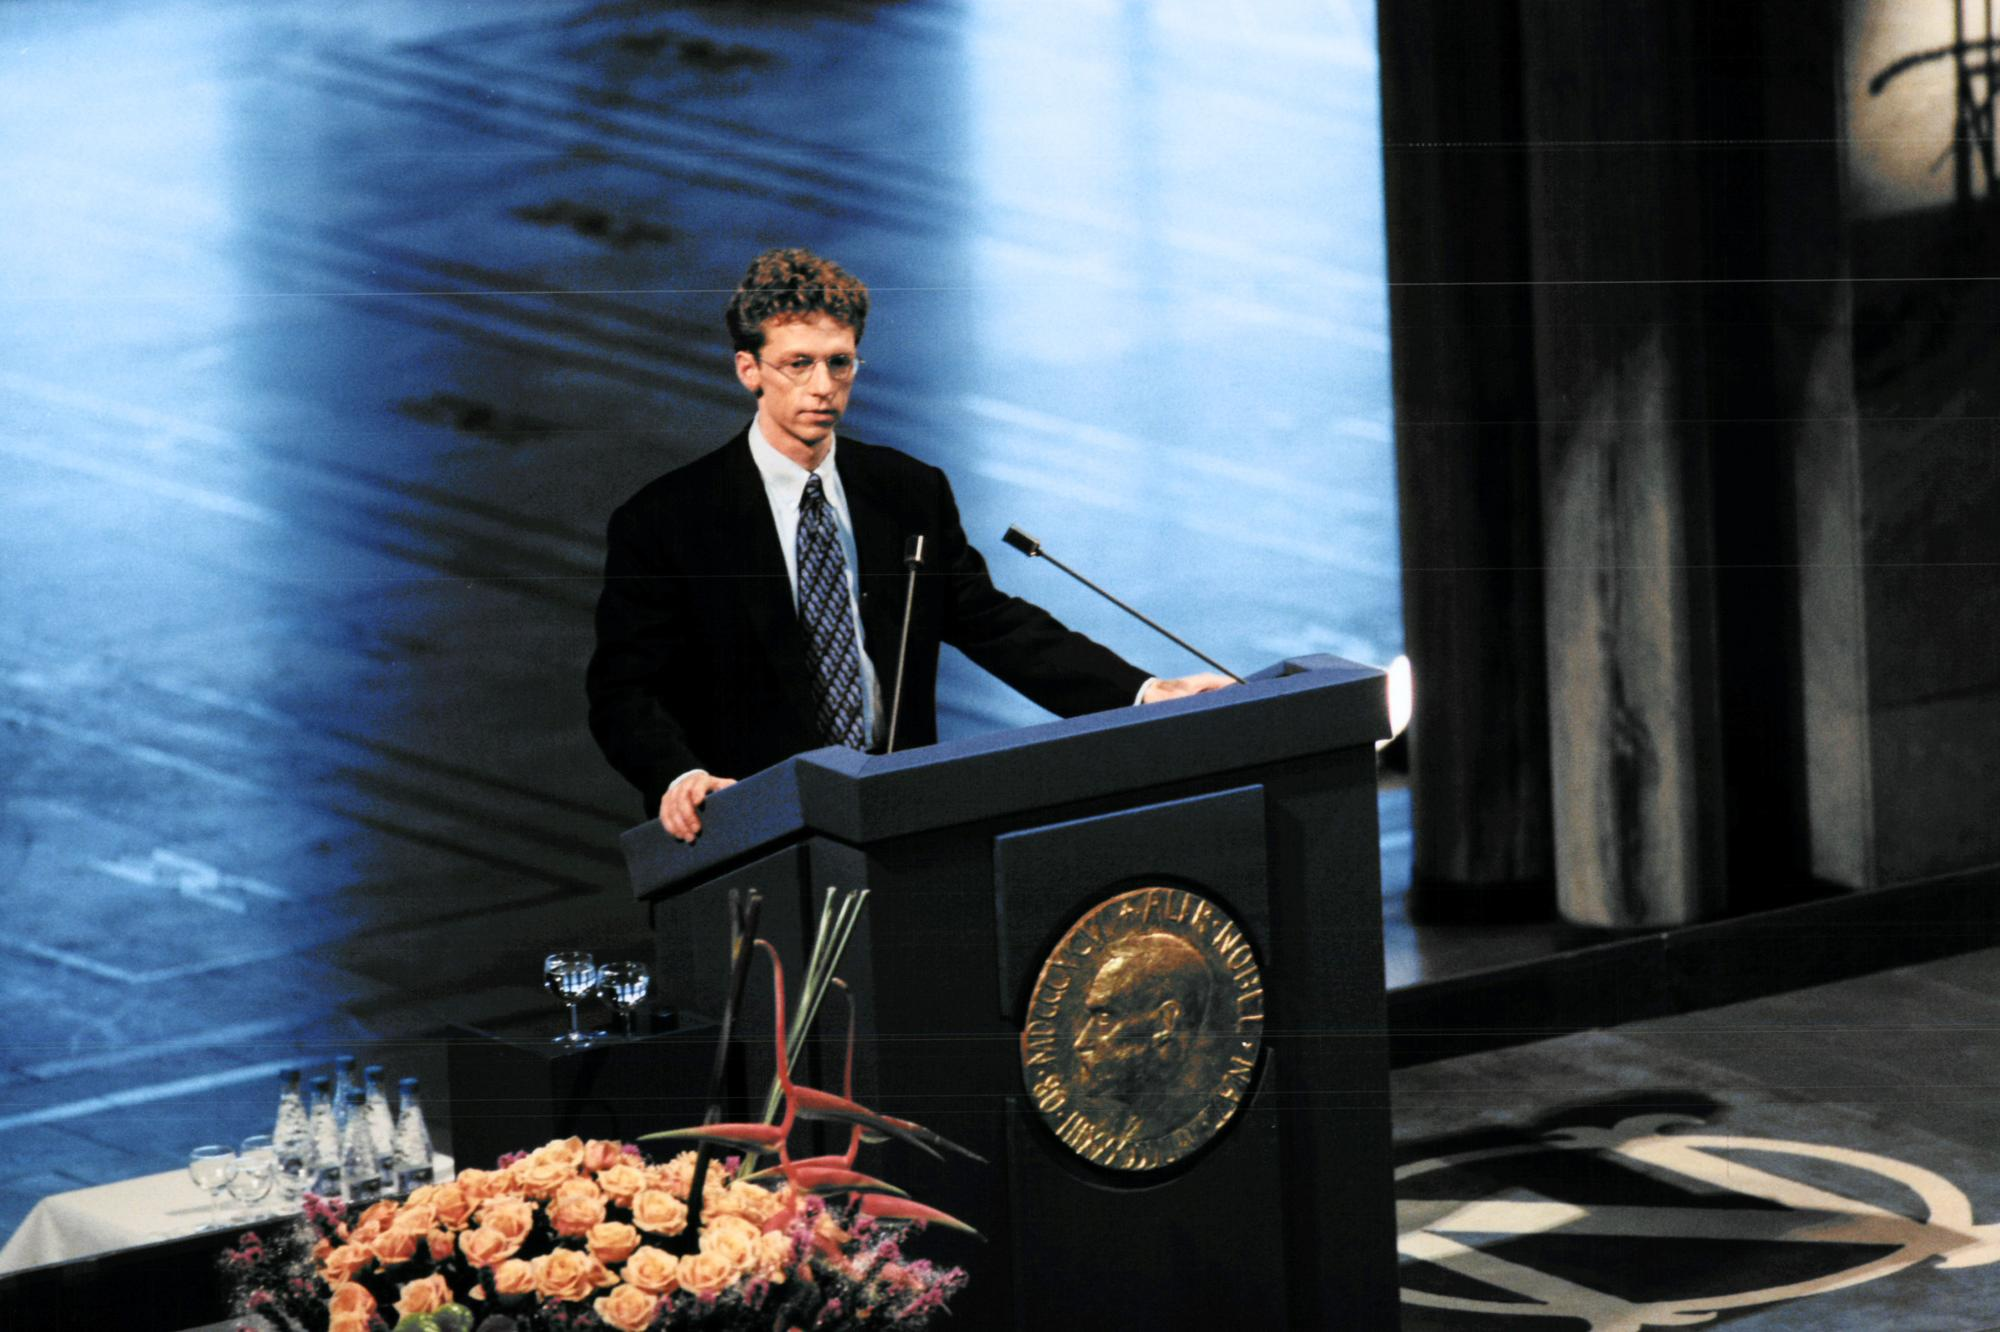 Dr. James Orbinski making a Nobel Prize acceptance speech at a podium